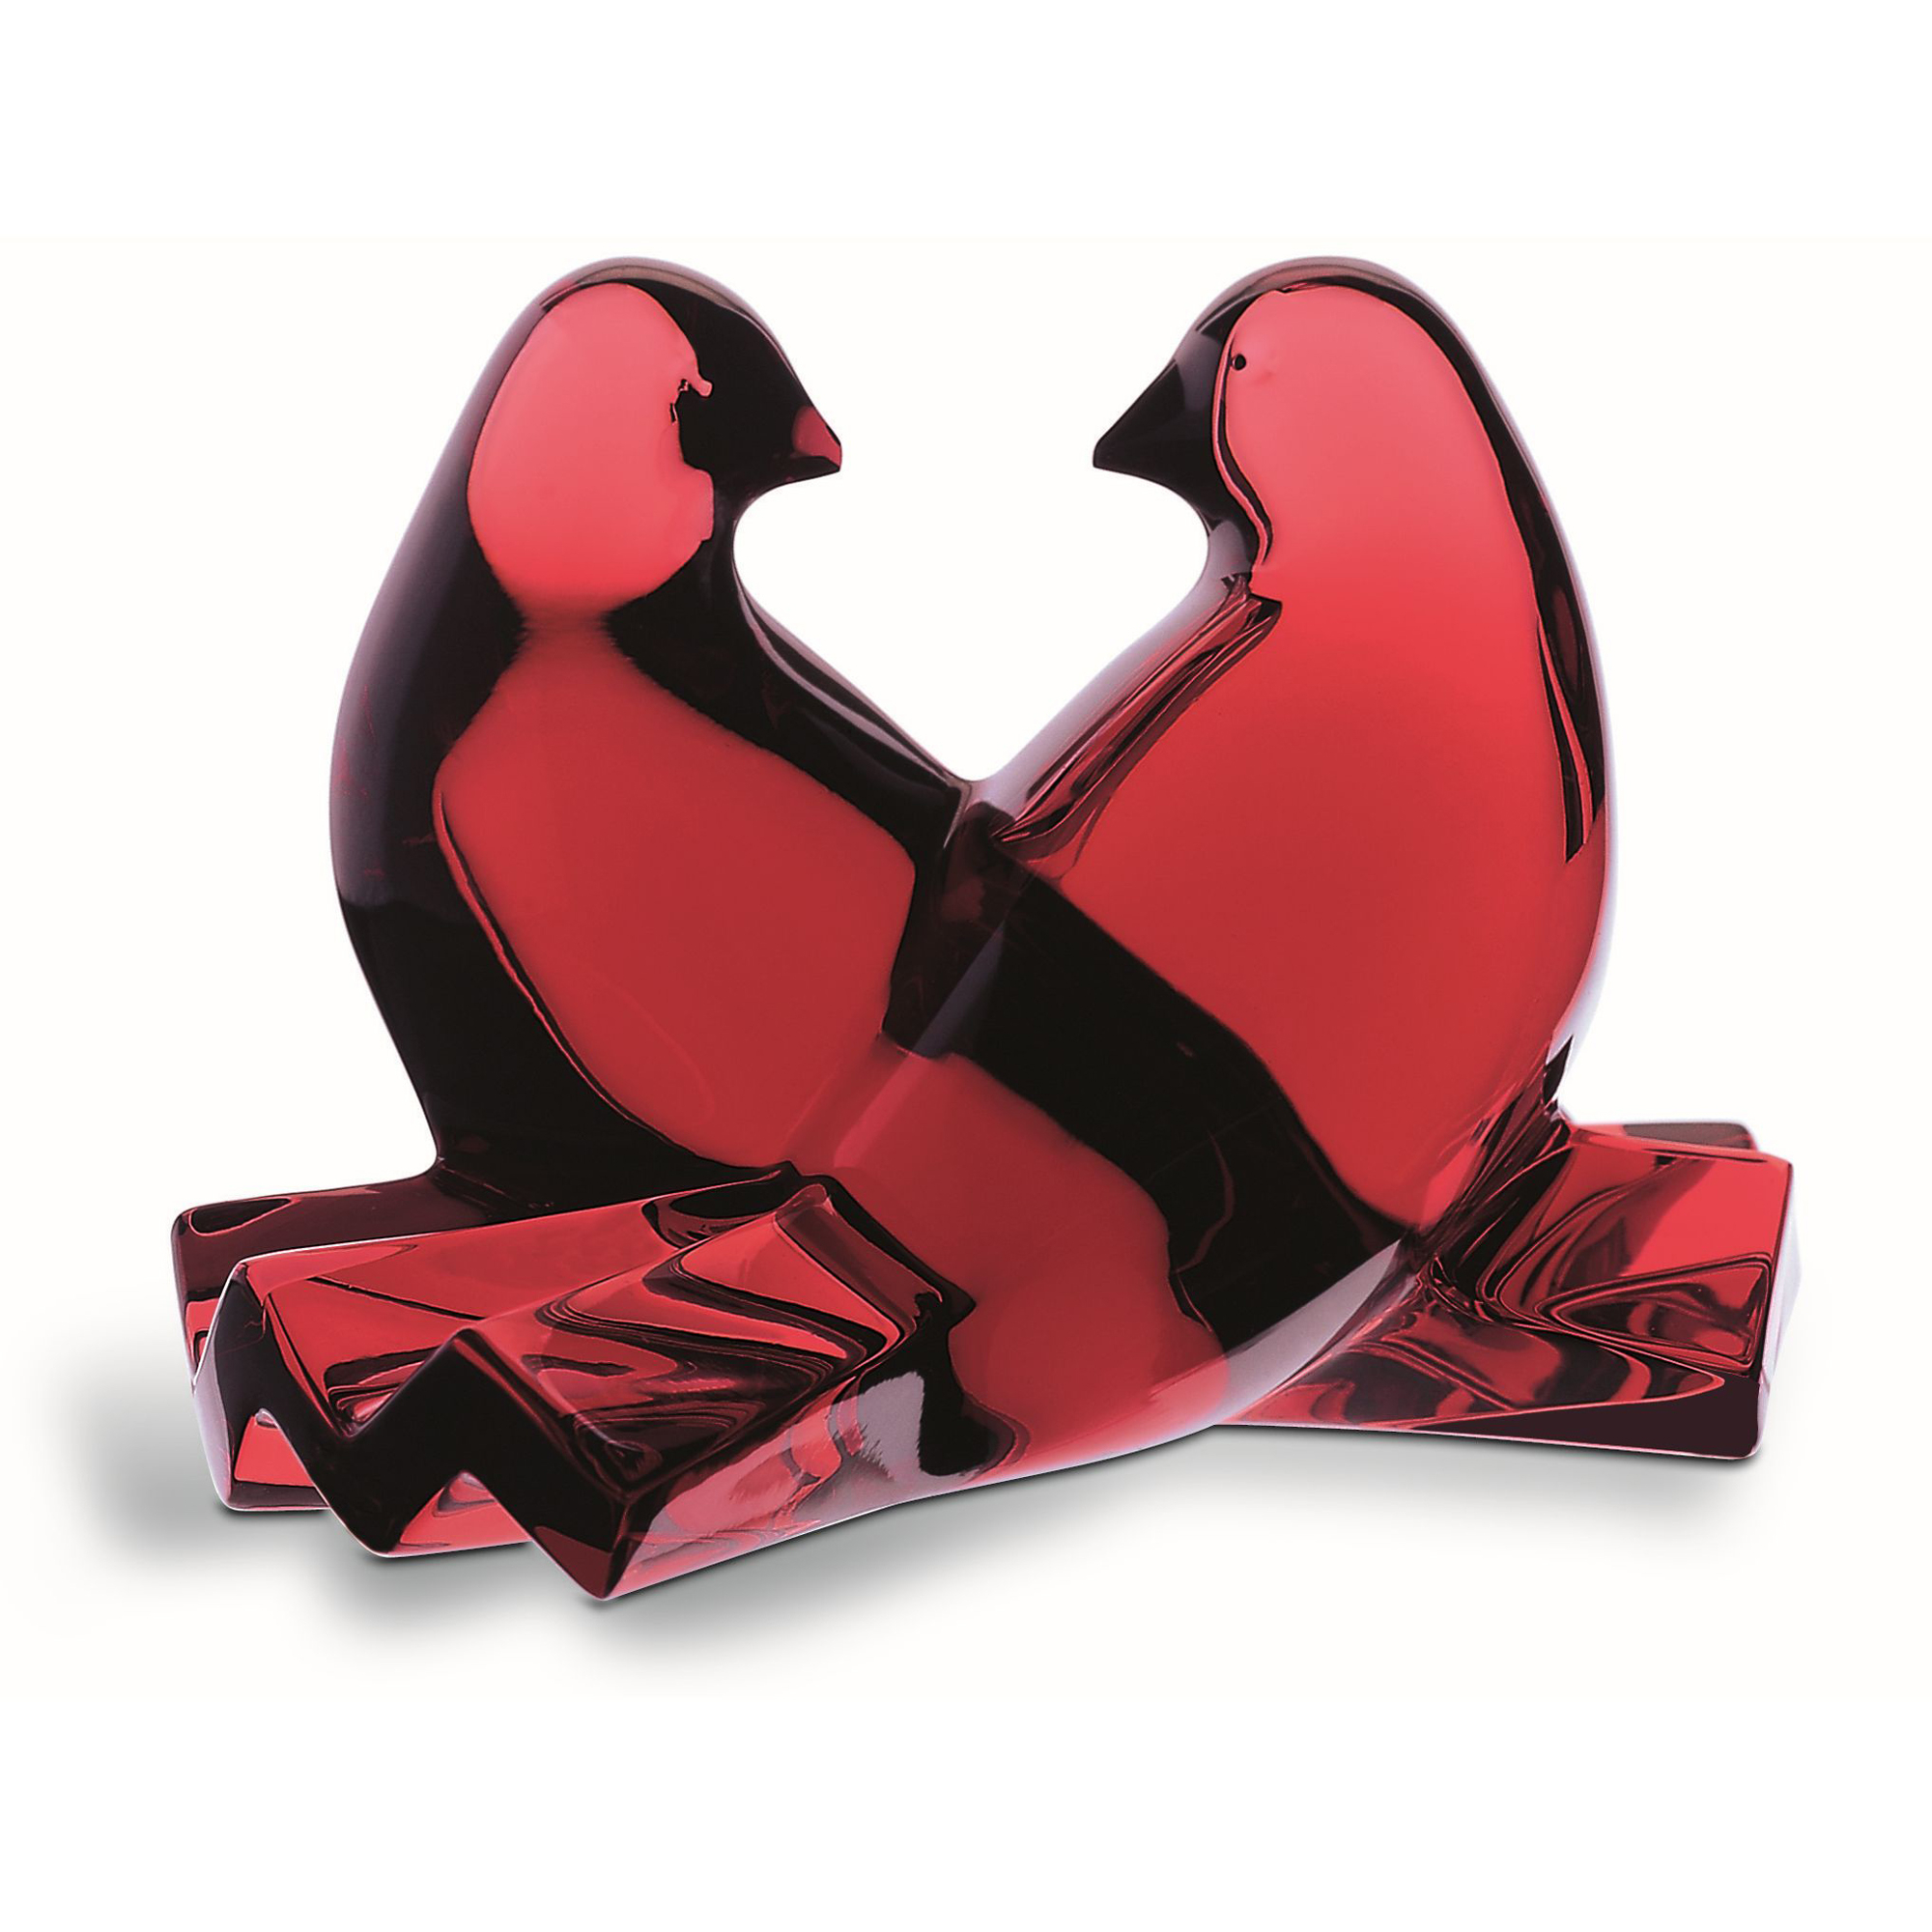 Baccarat Loving Doves, Red